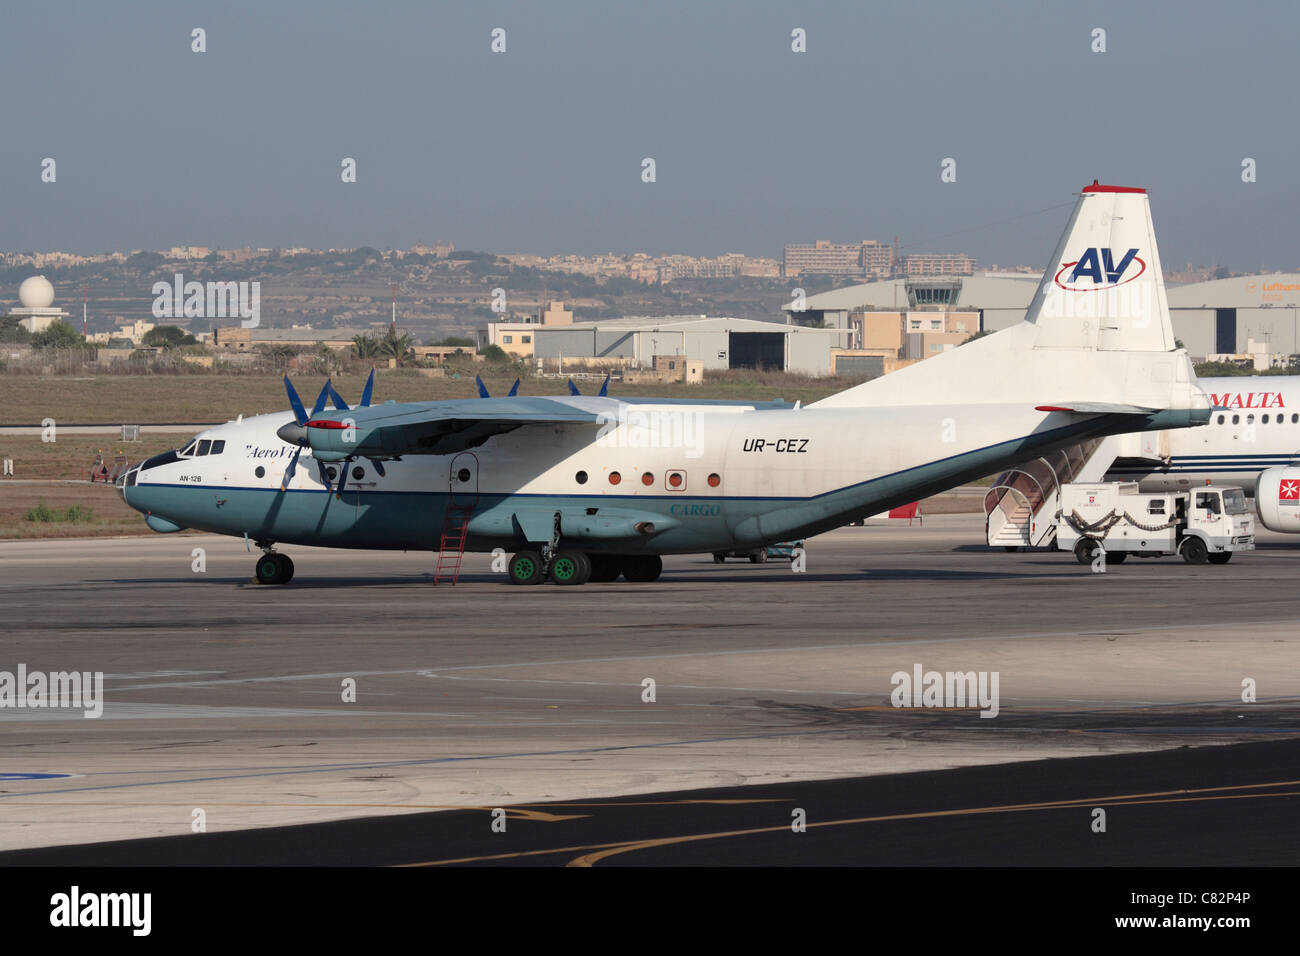 Aerovis Airlines Antonov An-12 cargo plane parked on airport ramp - Stock Image